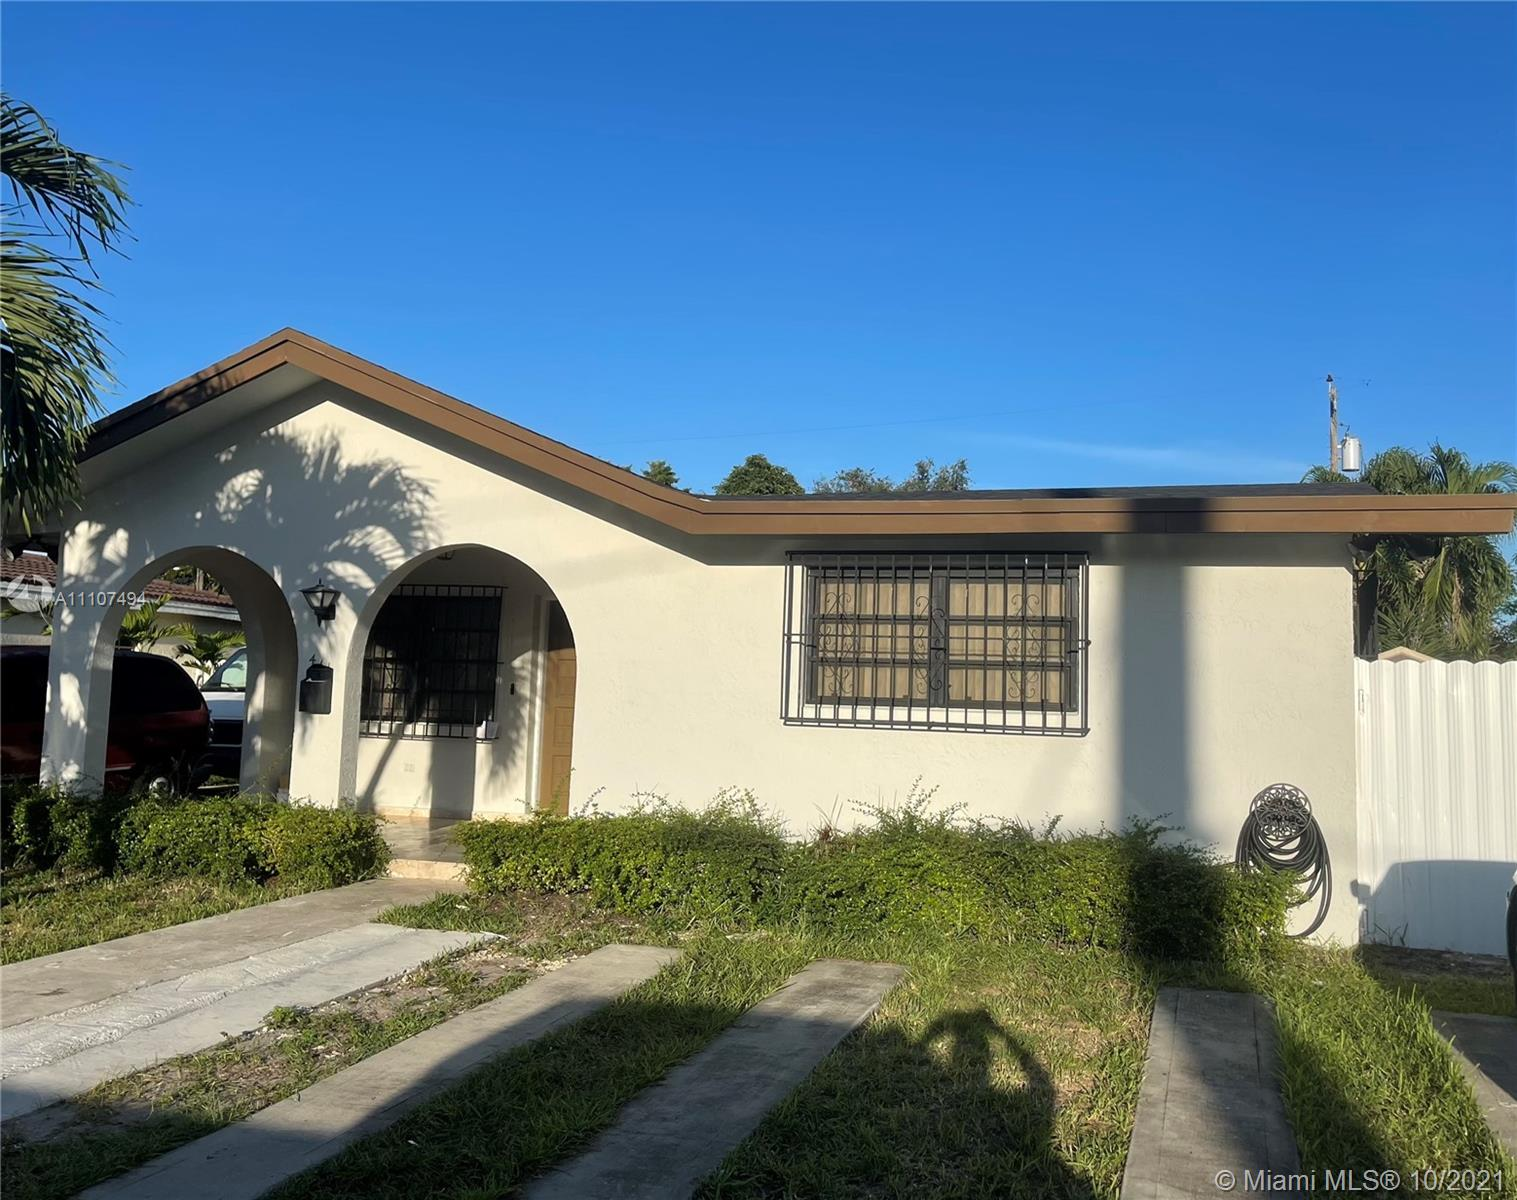 Single Family Home,For Sale,441 SW 62nd Ave, Miami, Florida 33144,Brickell,realty,broker,condos near me